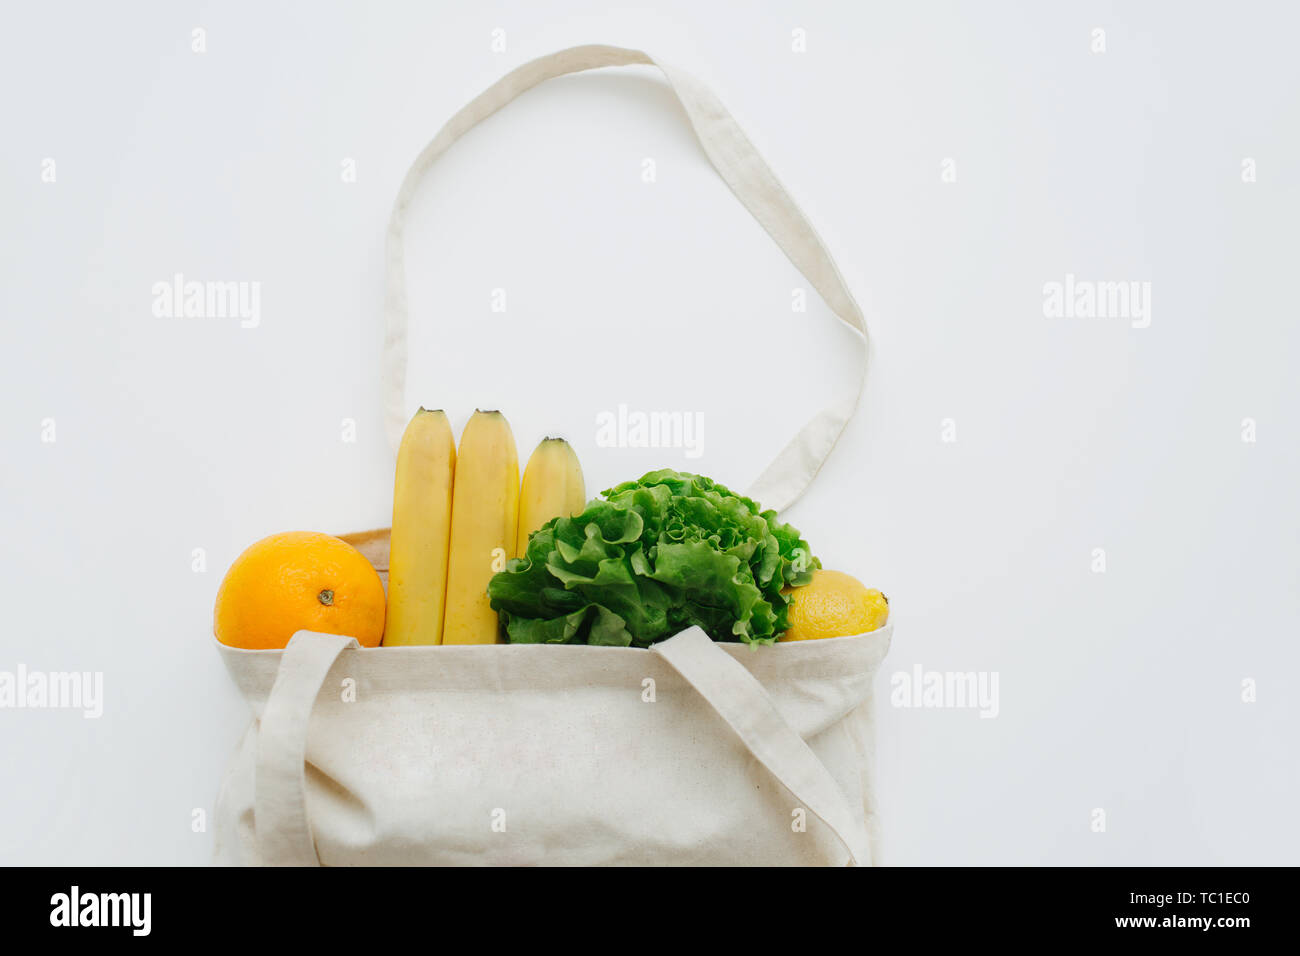 Fresh vegetables in a linen bag for shopping. Eco lifestyle, zero waste concept. No plastic living. Healthy organic bananas, salad leaves. - Stock Image